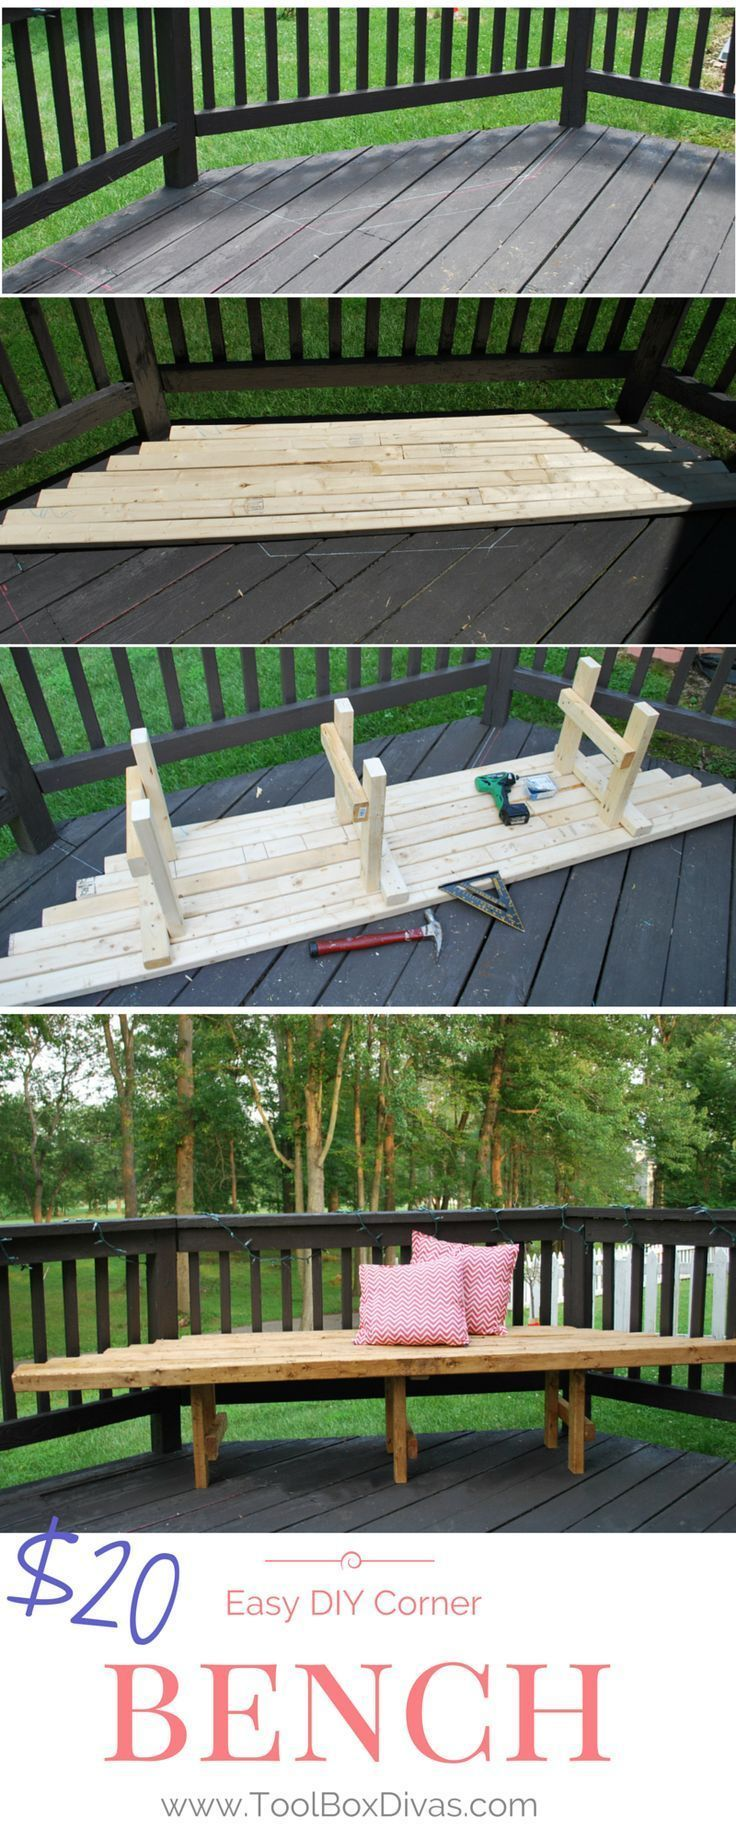 Need outdoor seating? Make your own seating with these super simple build plans....